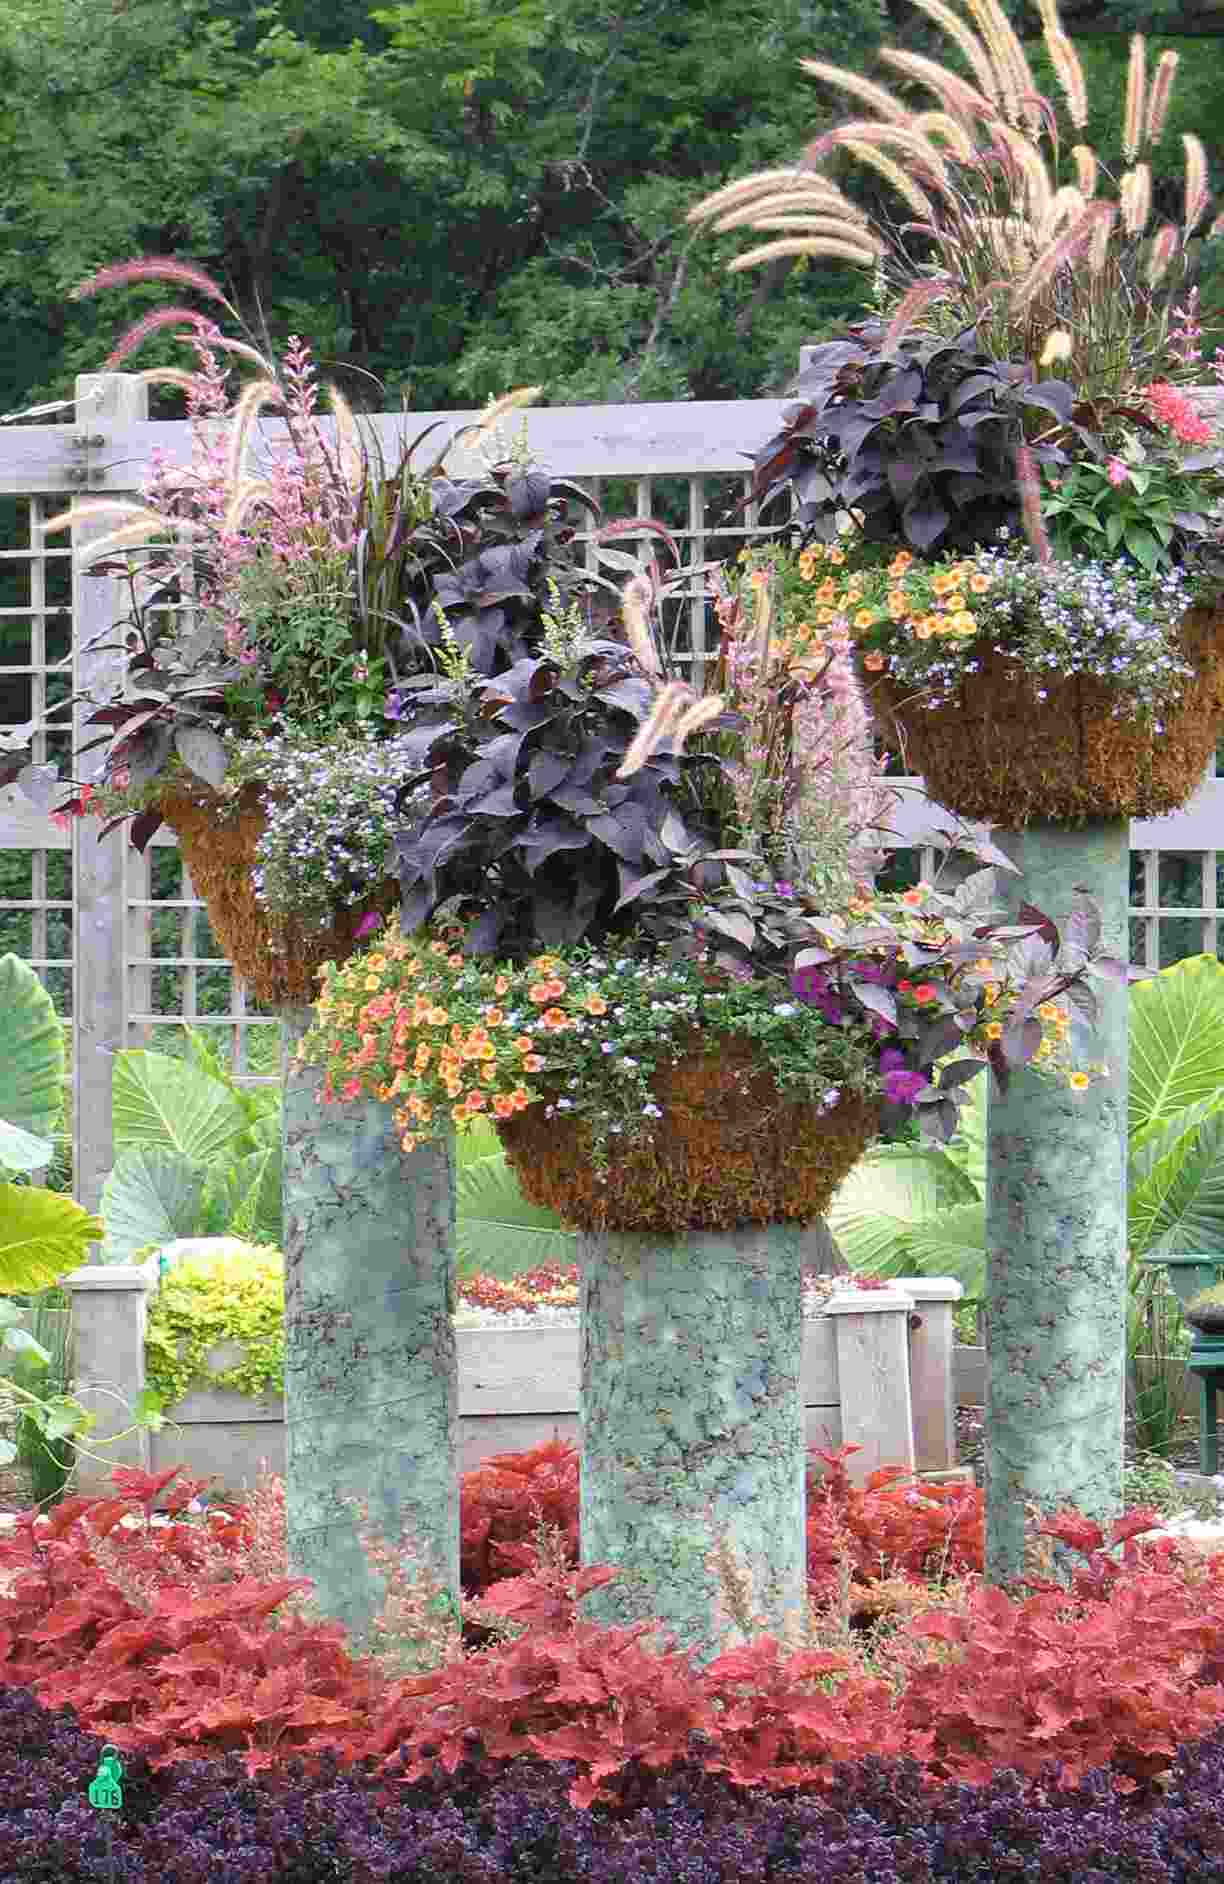 Howling Container Container Gardening Blog Rutgers Landscape Nursery Fairy Garden Containers Vegetable Garden Containers garden Creative Garden Containers